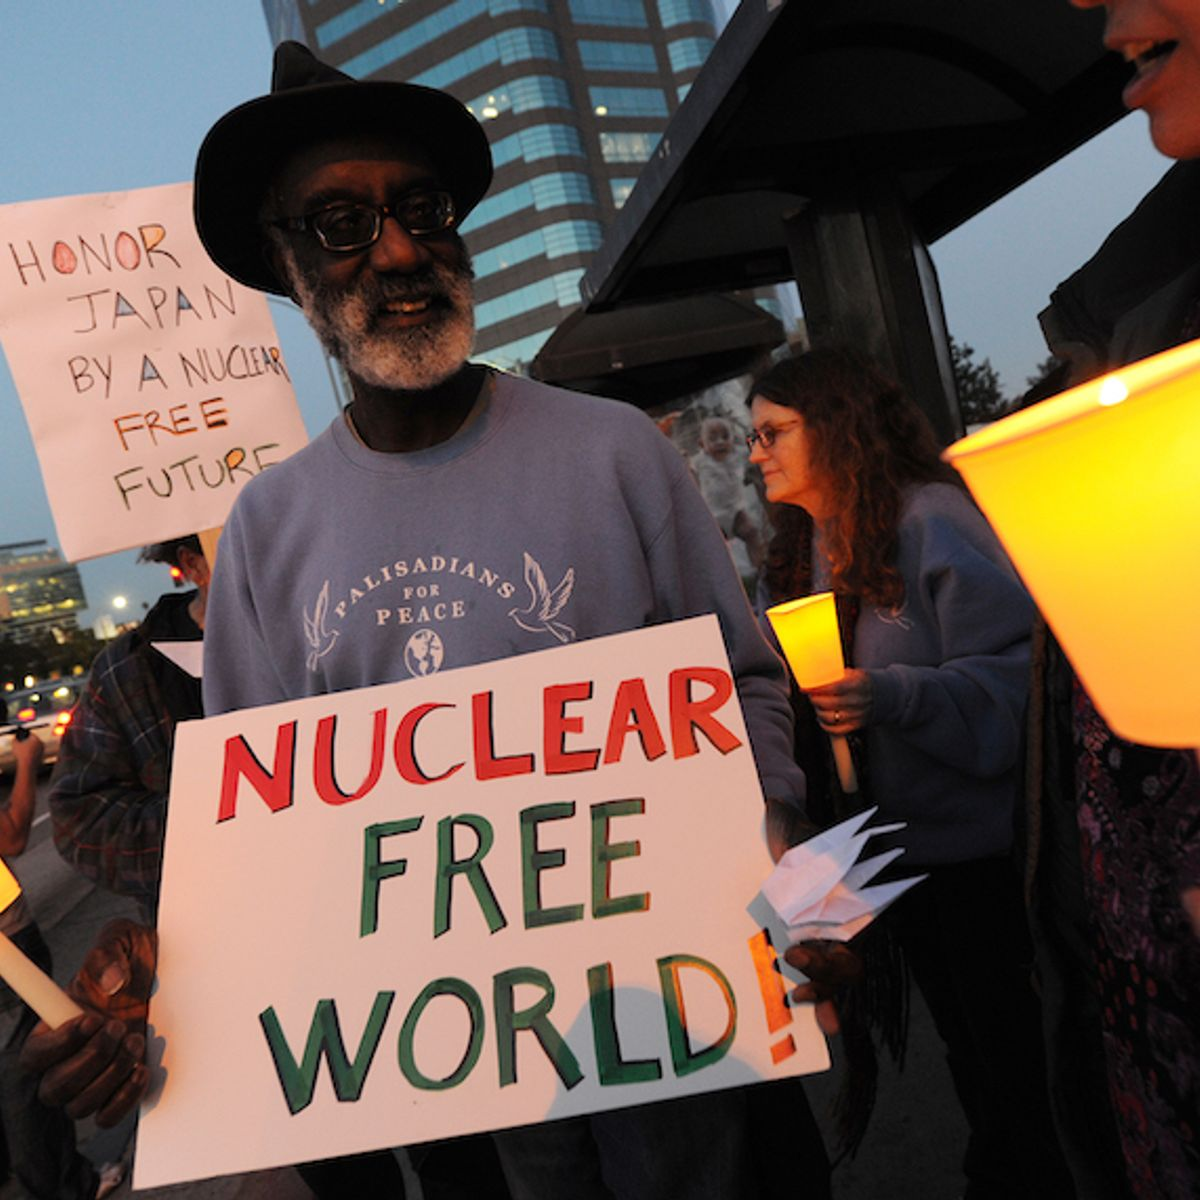 Cities in the crosshairs are pushing back against nuclear weapons